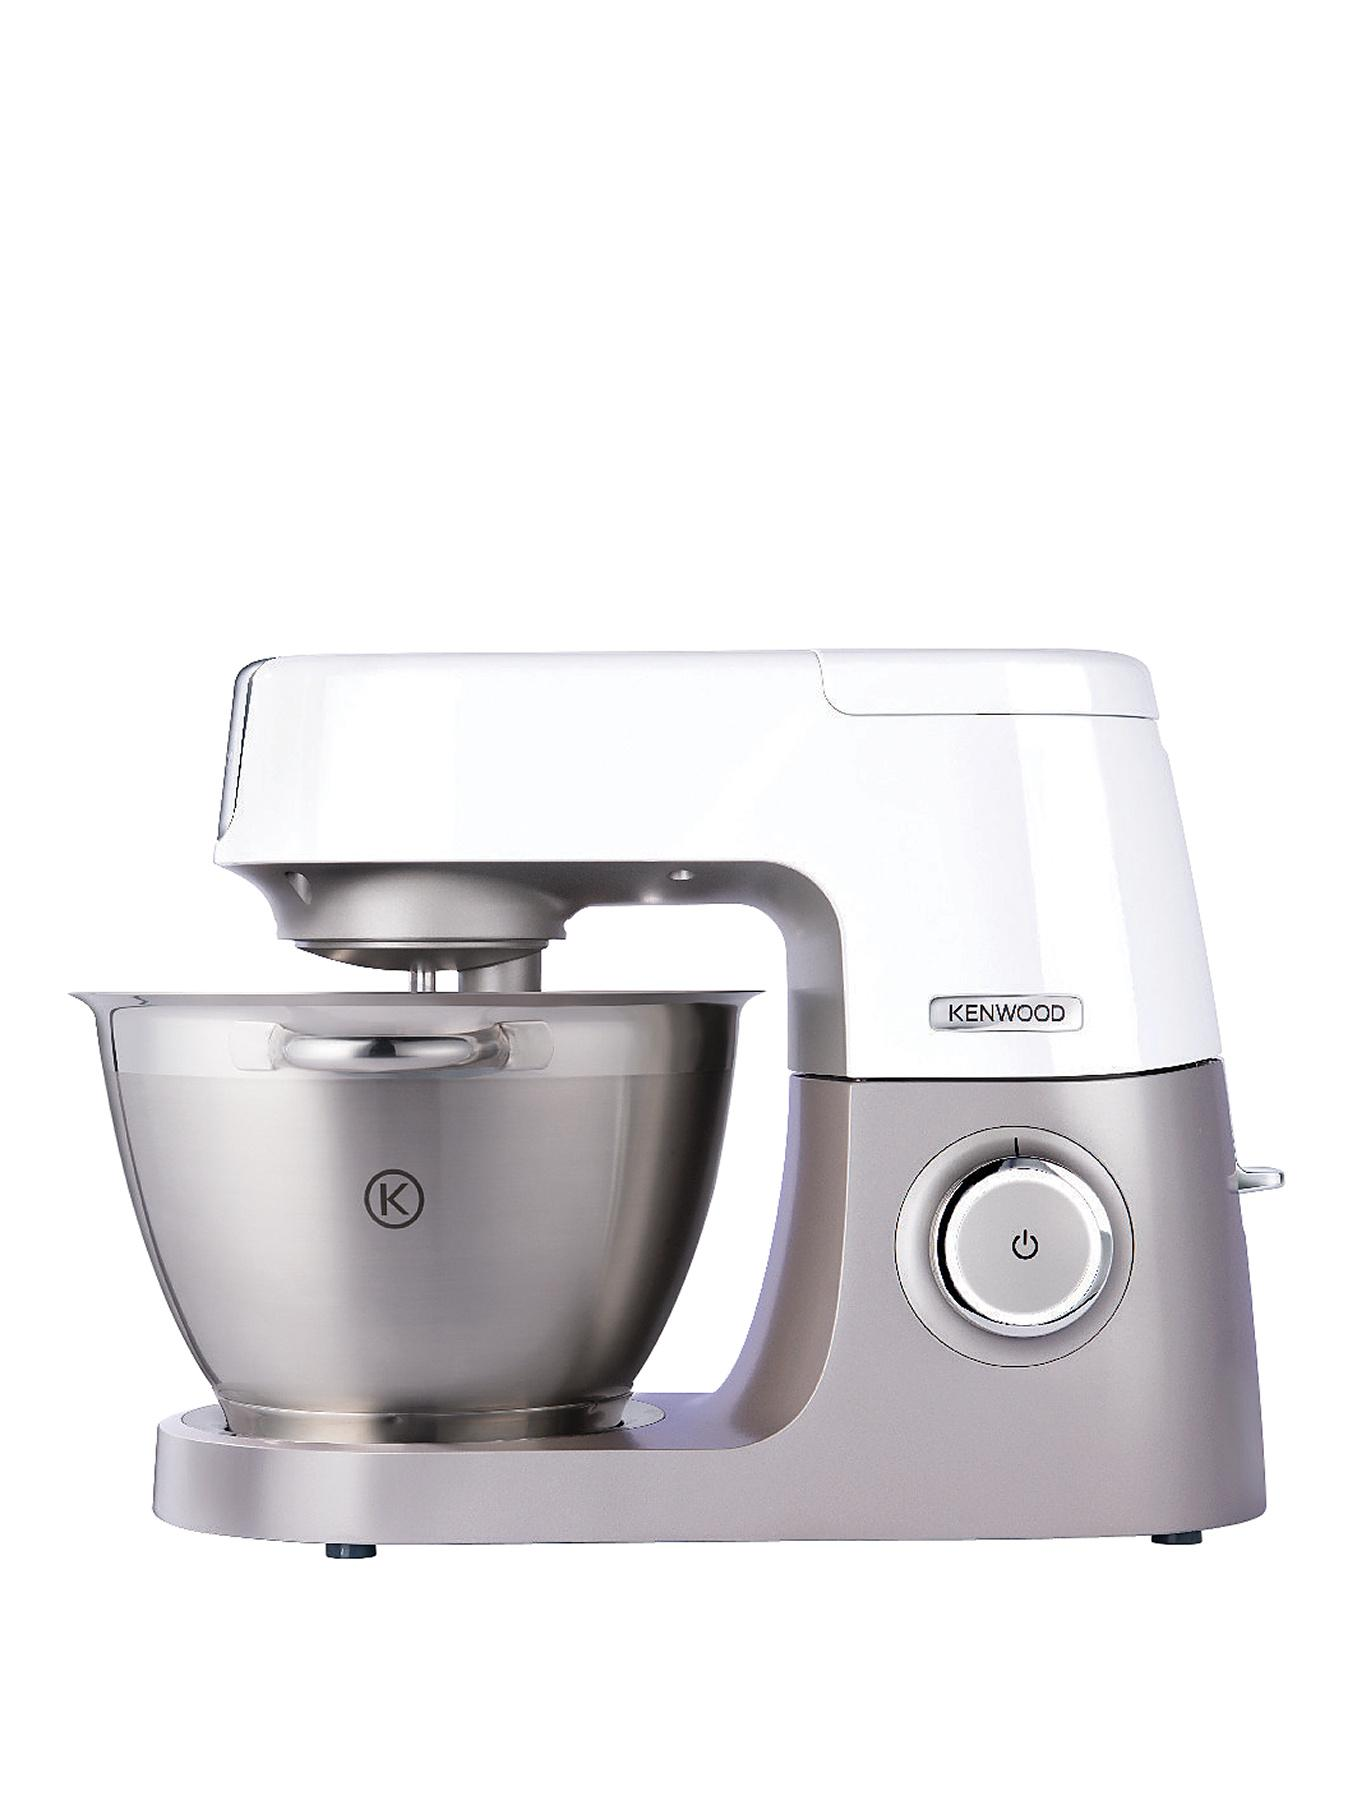 Kenwood KVC5000 Chef Sense Kitchen Machine